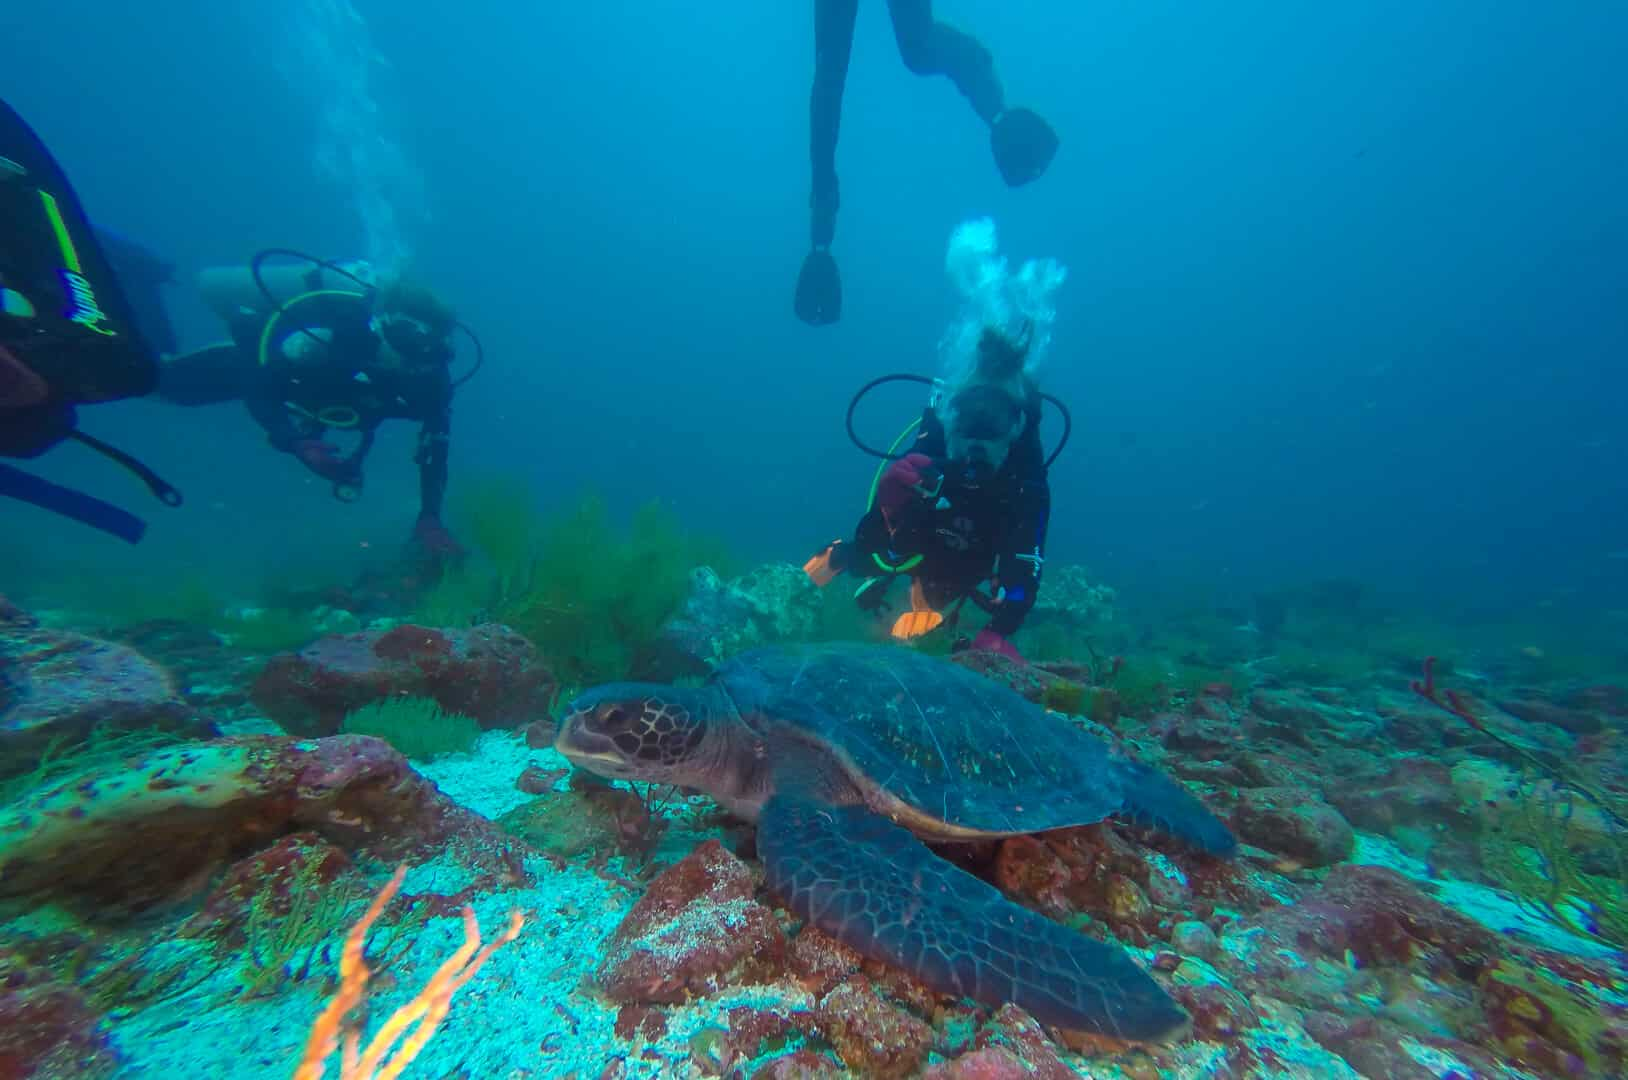 Diving in the Galapagos with sea turtles